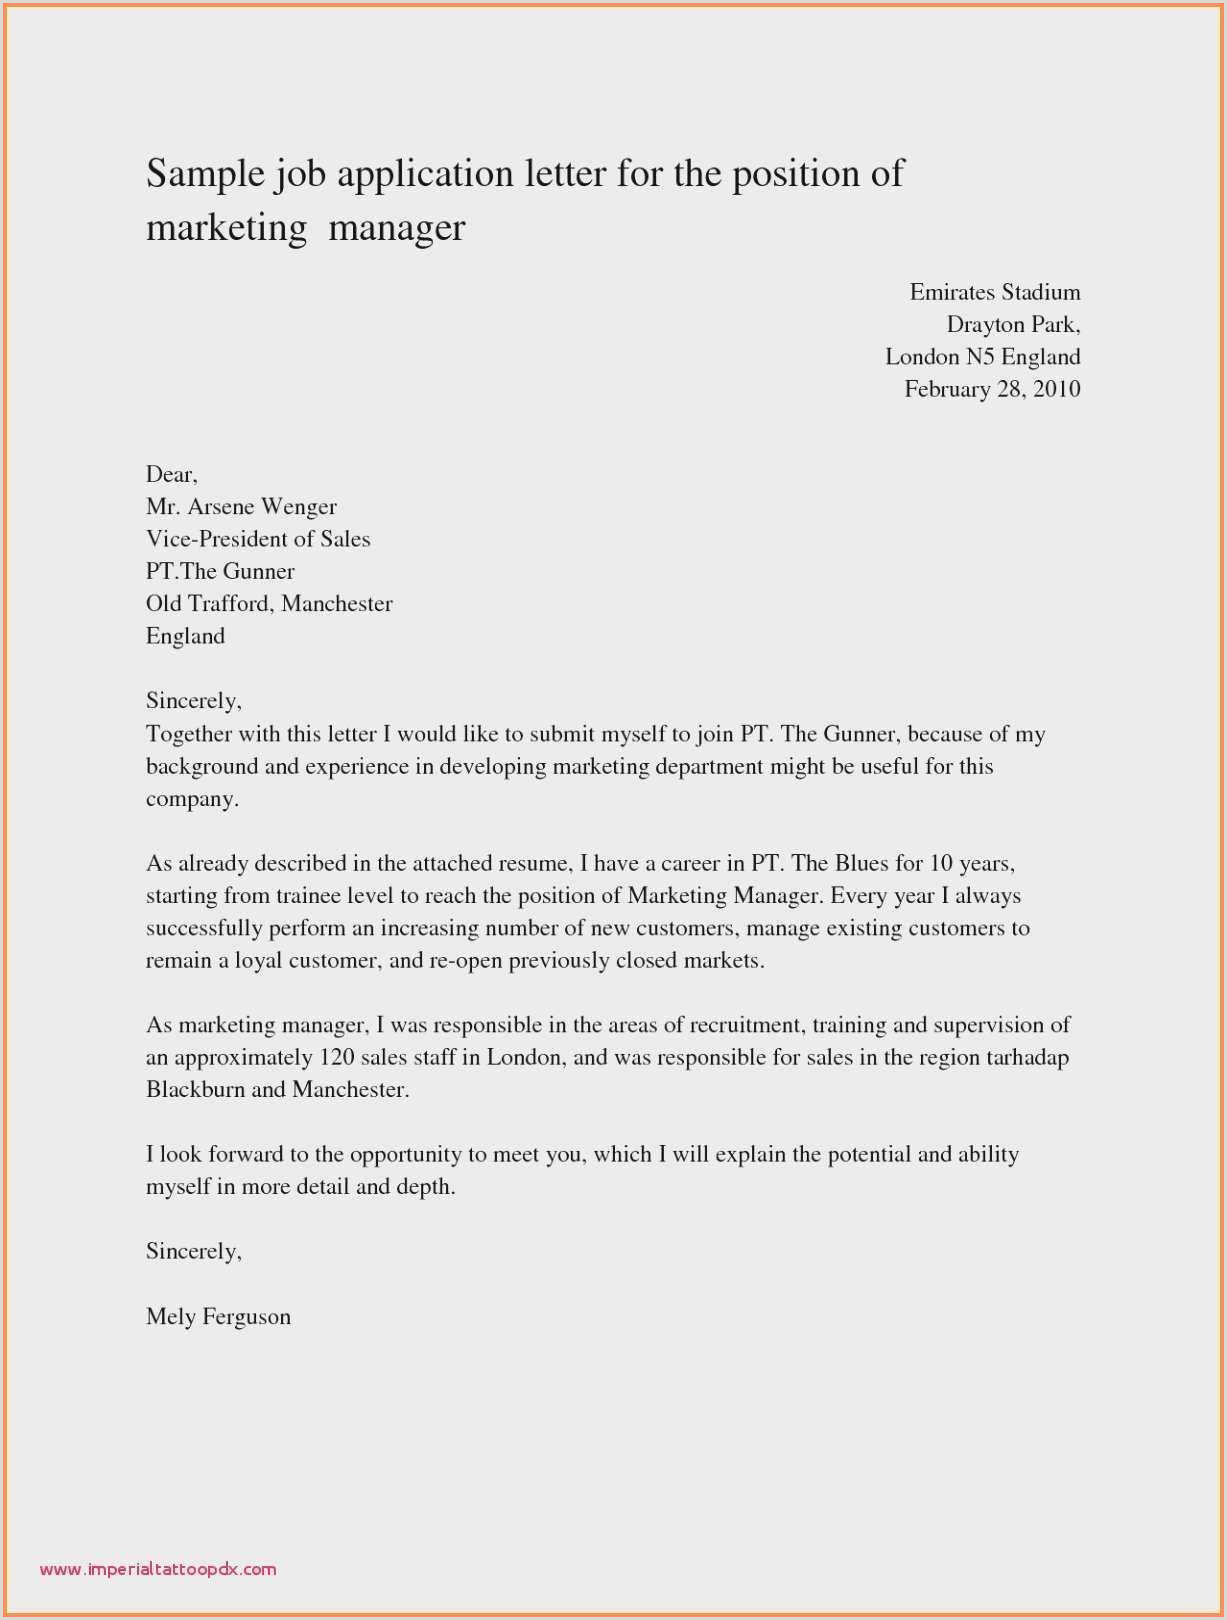 Business Card Titles Examples 22 Templates For Business Letters Business Letter Format Job